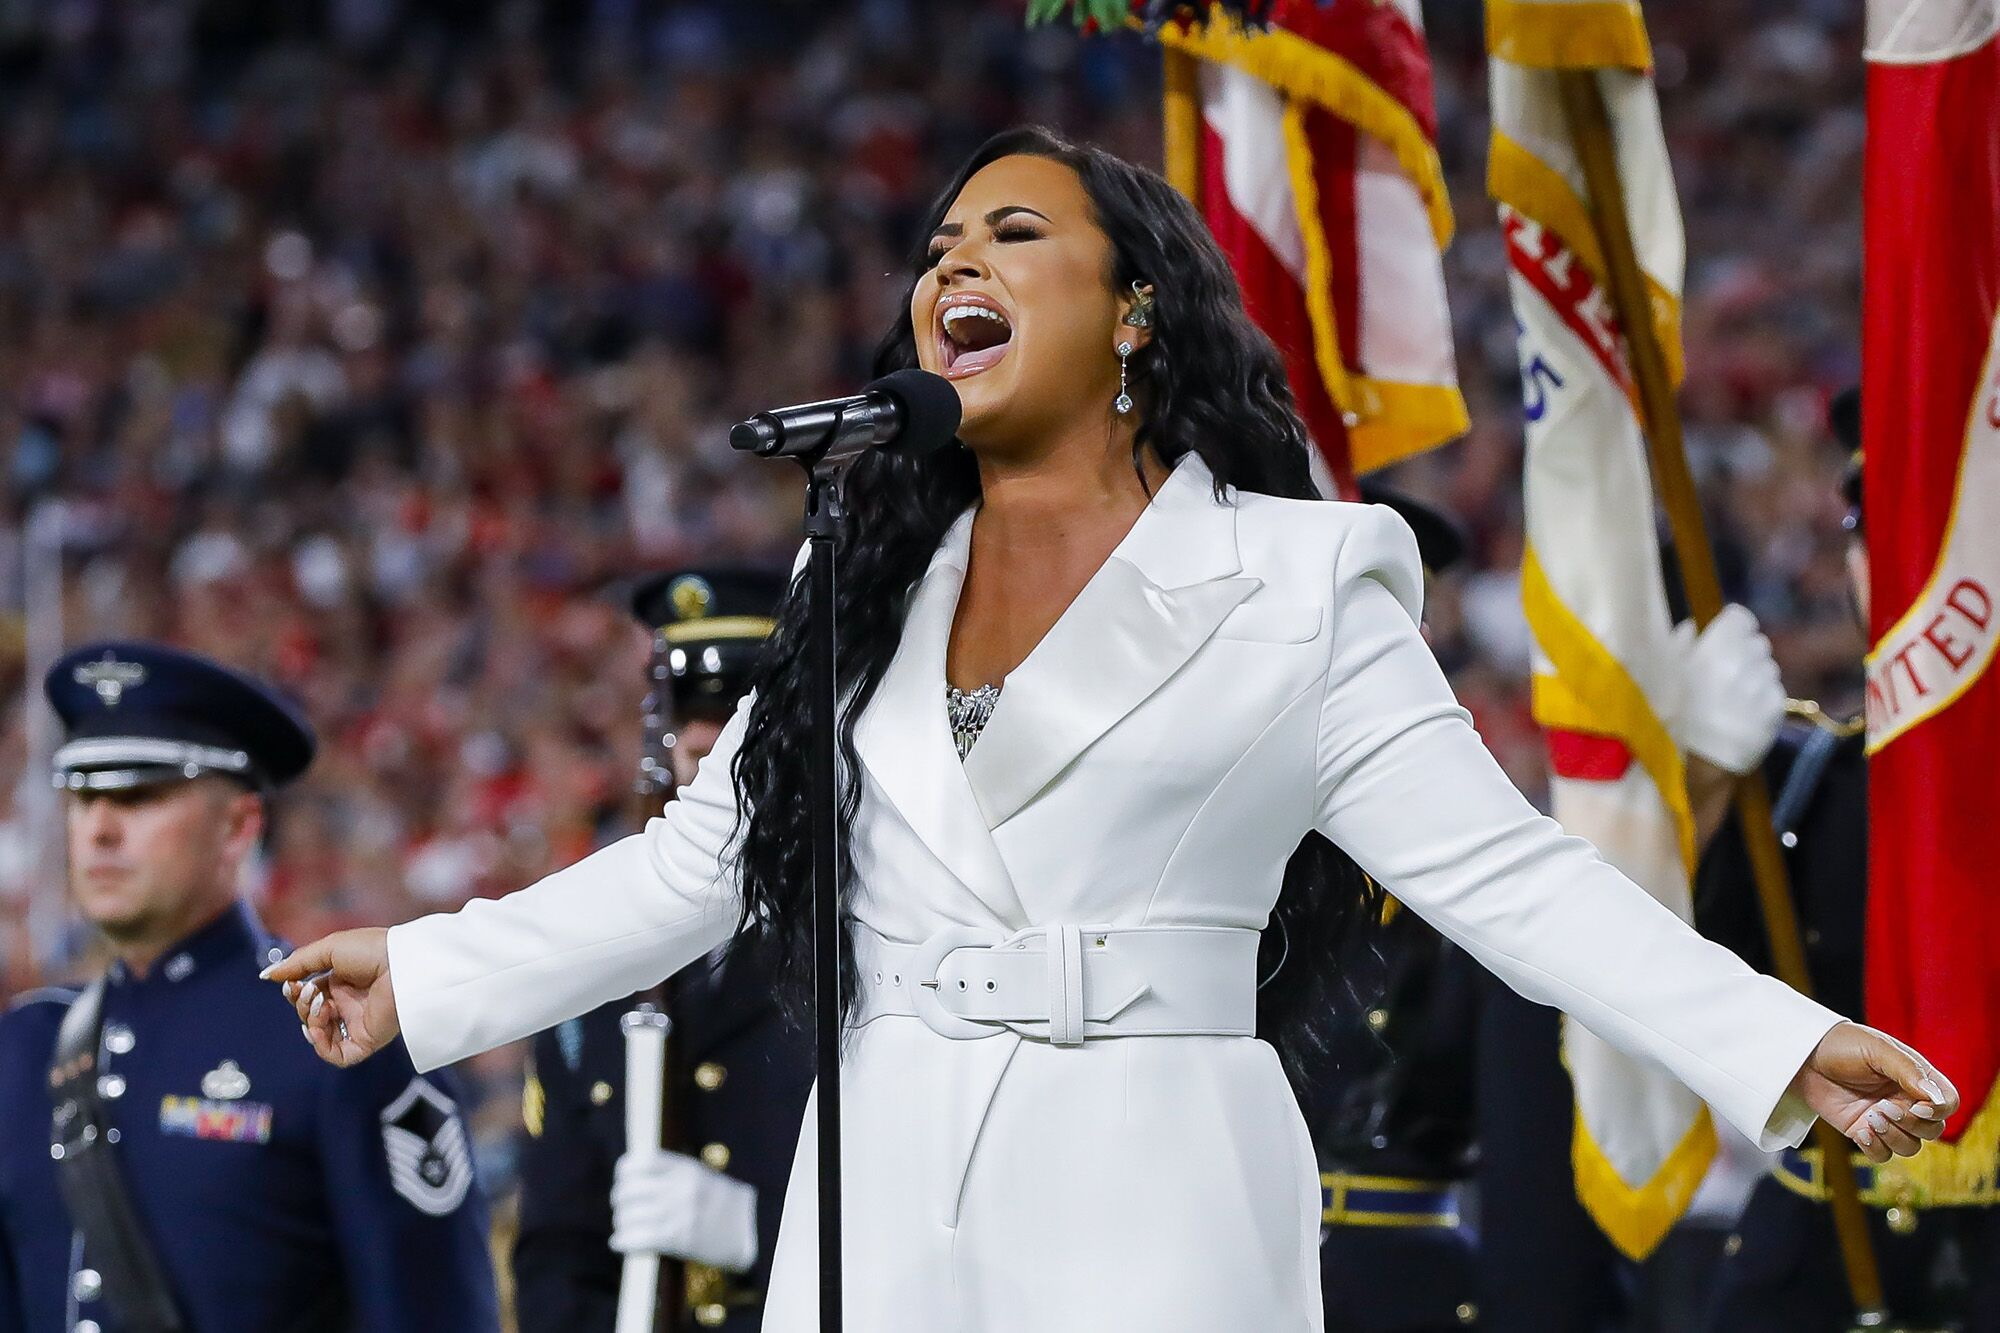 Demi Lovato performs the national anthem before the 2020 Super Bowl | Source: Getty Images